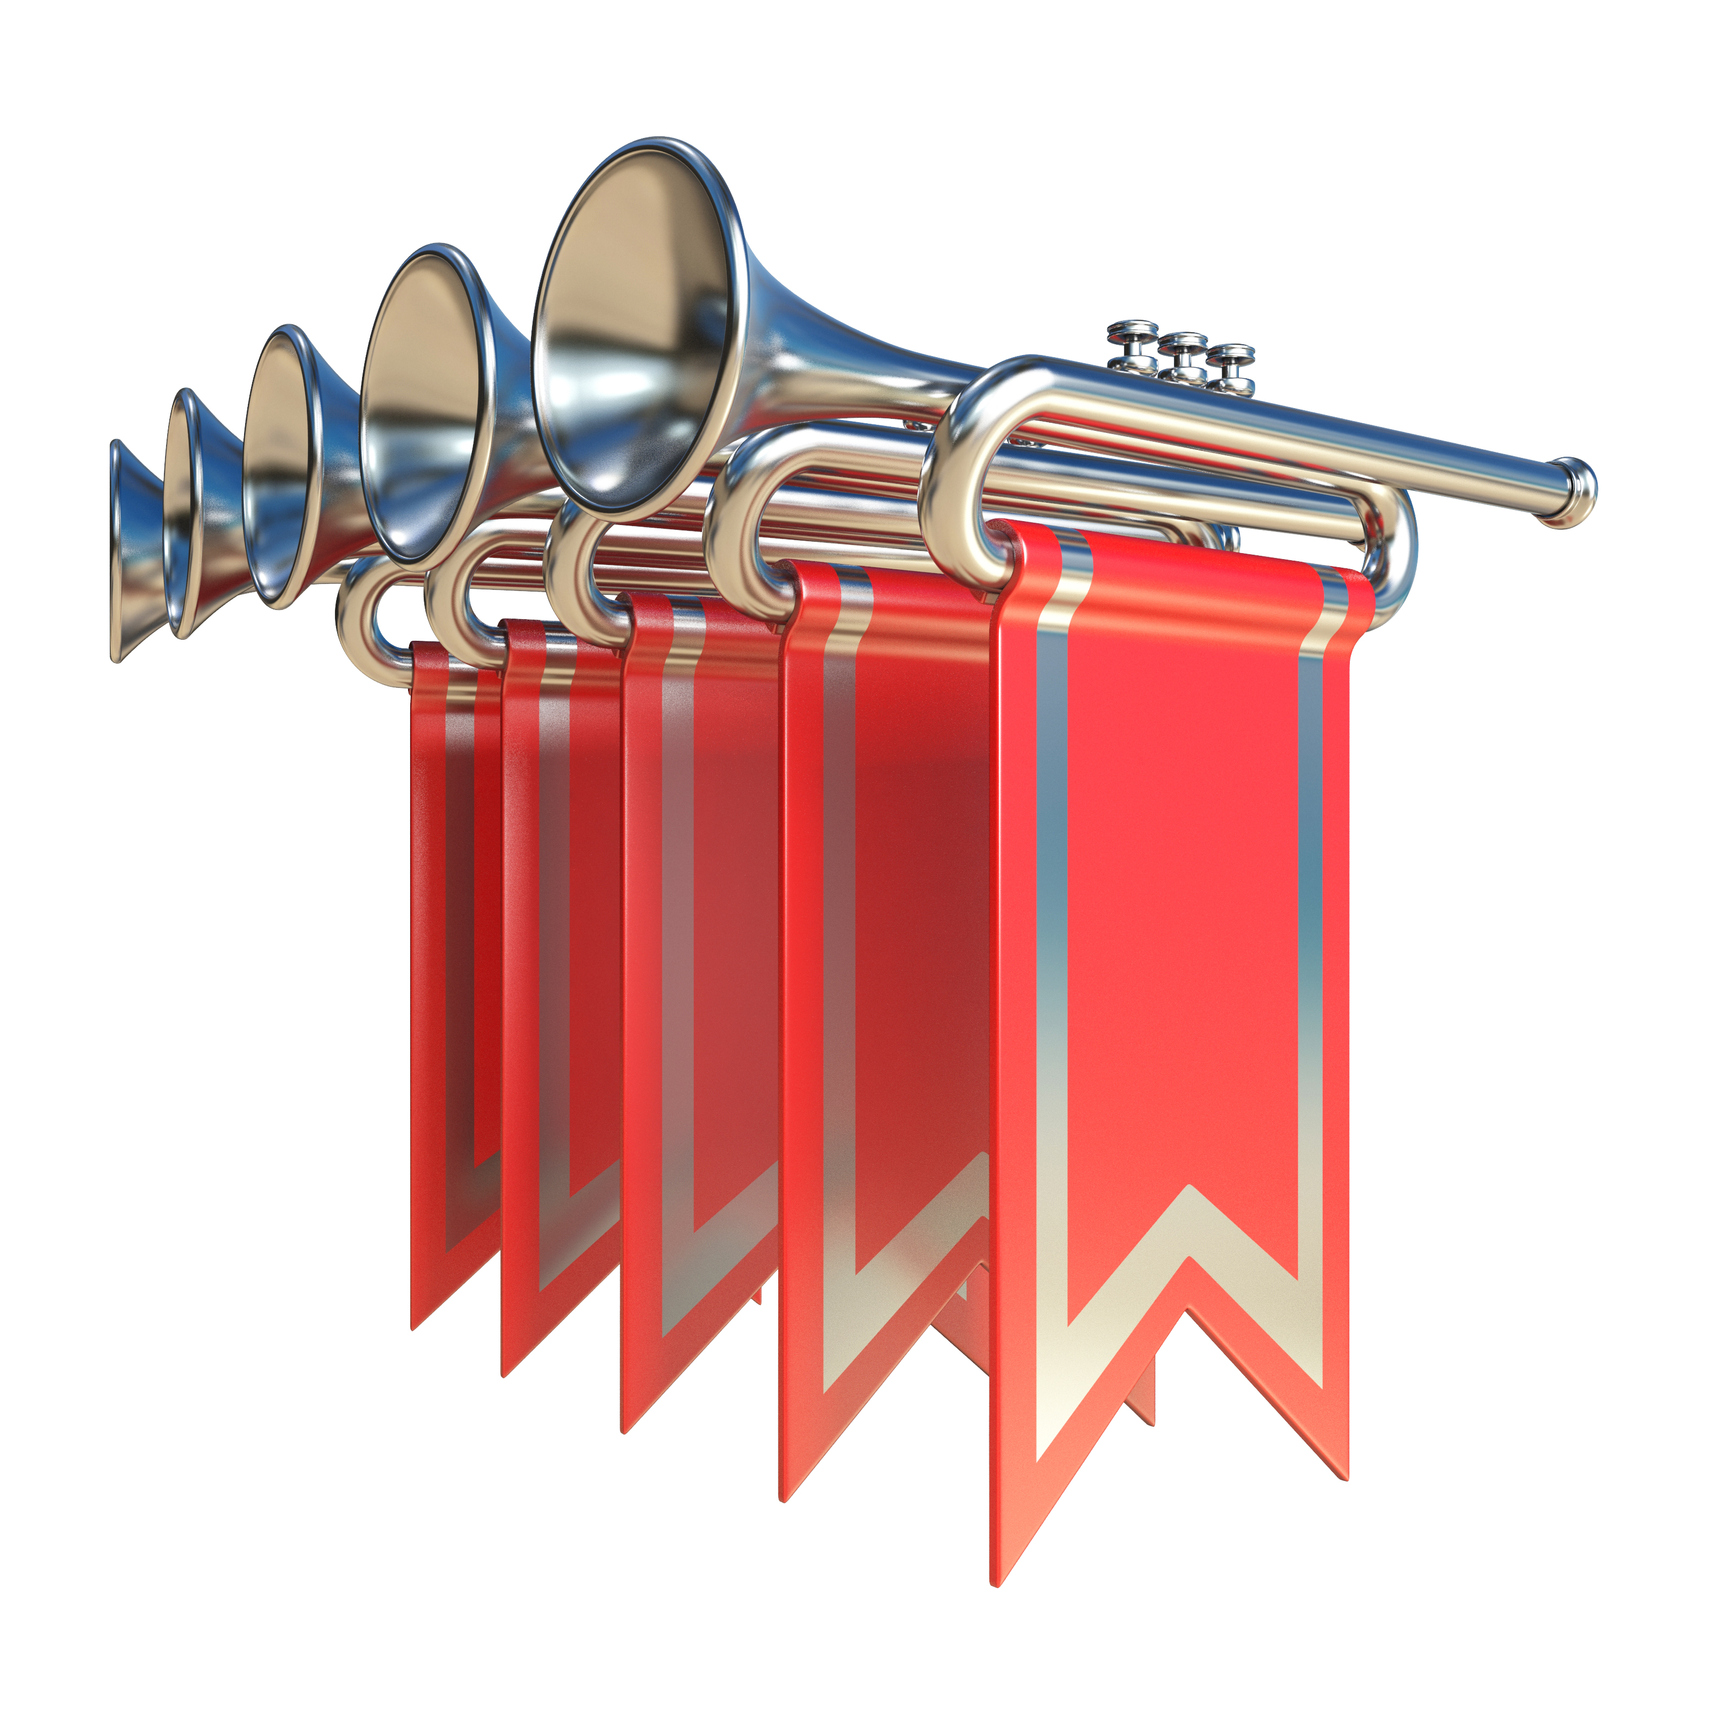 Fanfare five silver trumpets and red flags 3D render illustration isolated on white background